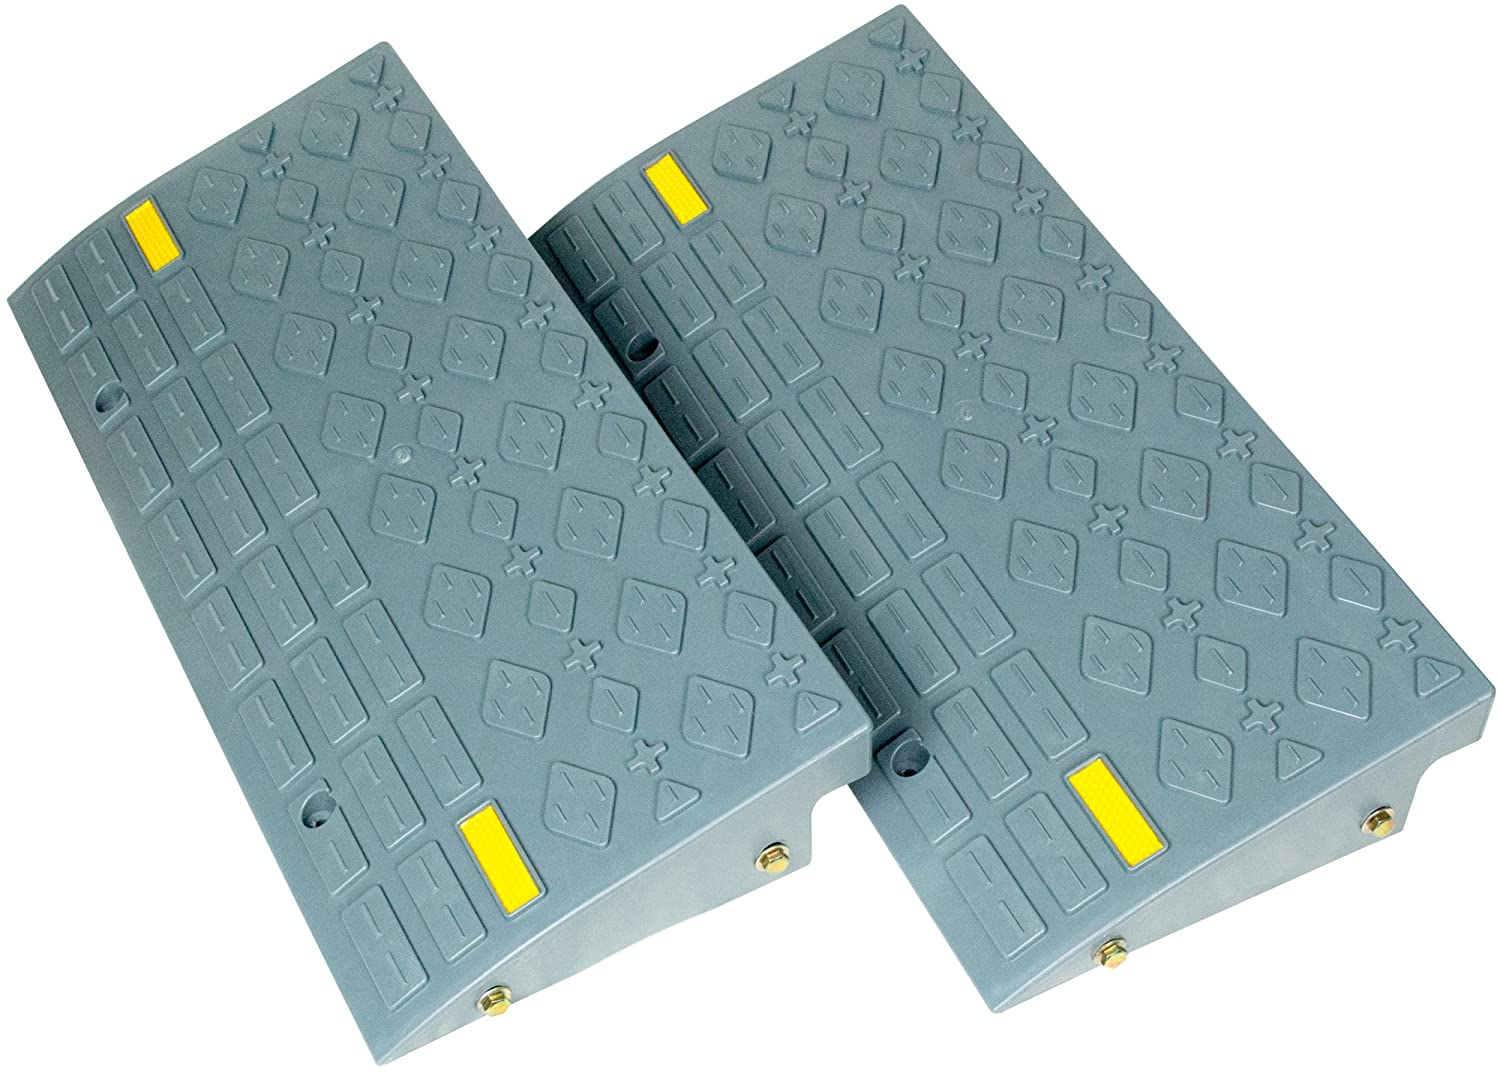 Set of Two Medium Size (4 inch Tall) Curb Ramps. Car, Truck, RV, Trailer, Cart or Handtruck. Can be Bolted Together or Used Separately. BUNKERWALL T&HI-B07D2DP87V